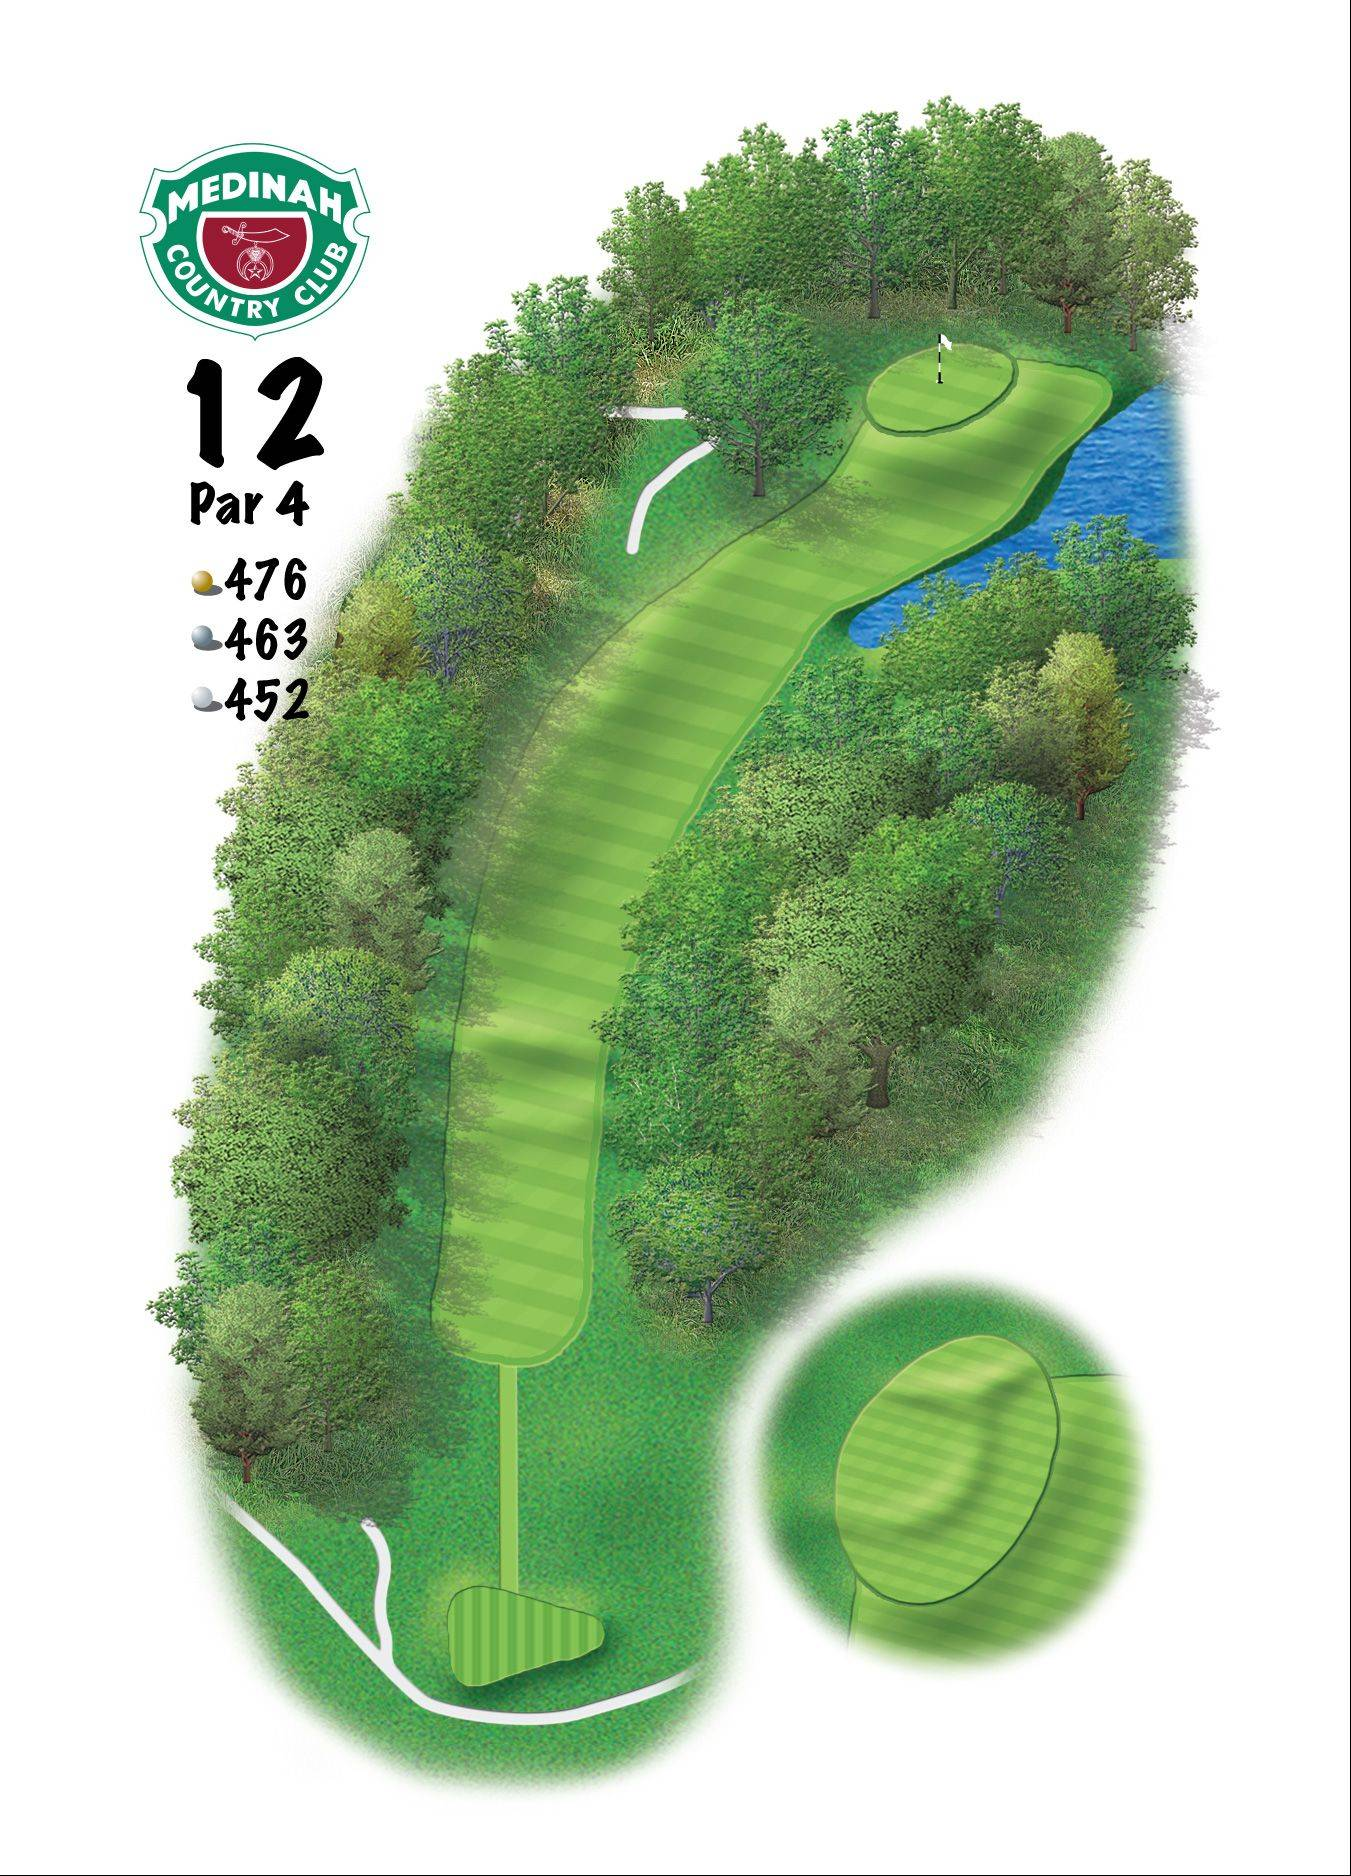 Hole 12 of the Ryder Cup course at Medinah. 476 yards/435 meters, Par-4, This gem just may be the best par-4 on the property. A generous driving area benefits the player staying to the right side for a better angle to approach the green. A big oak guards the green on the left side that the membership has hit 95,345 times over the years.